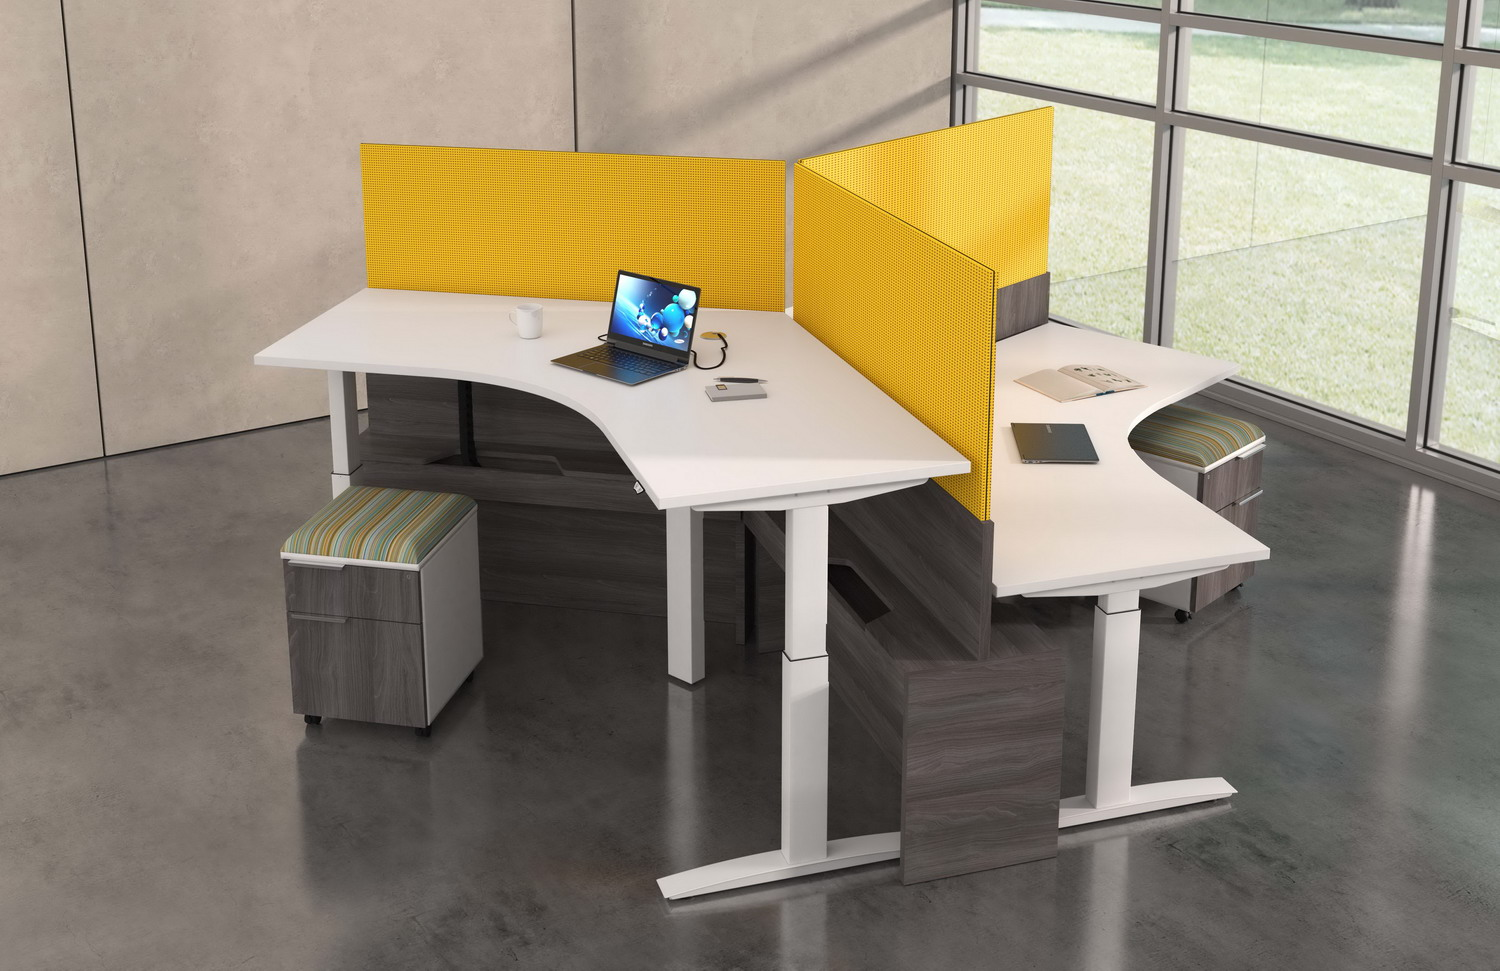 Contract furniture rendering from above of the height adjustable desk with yellow dividers.